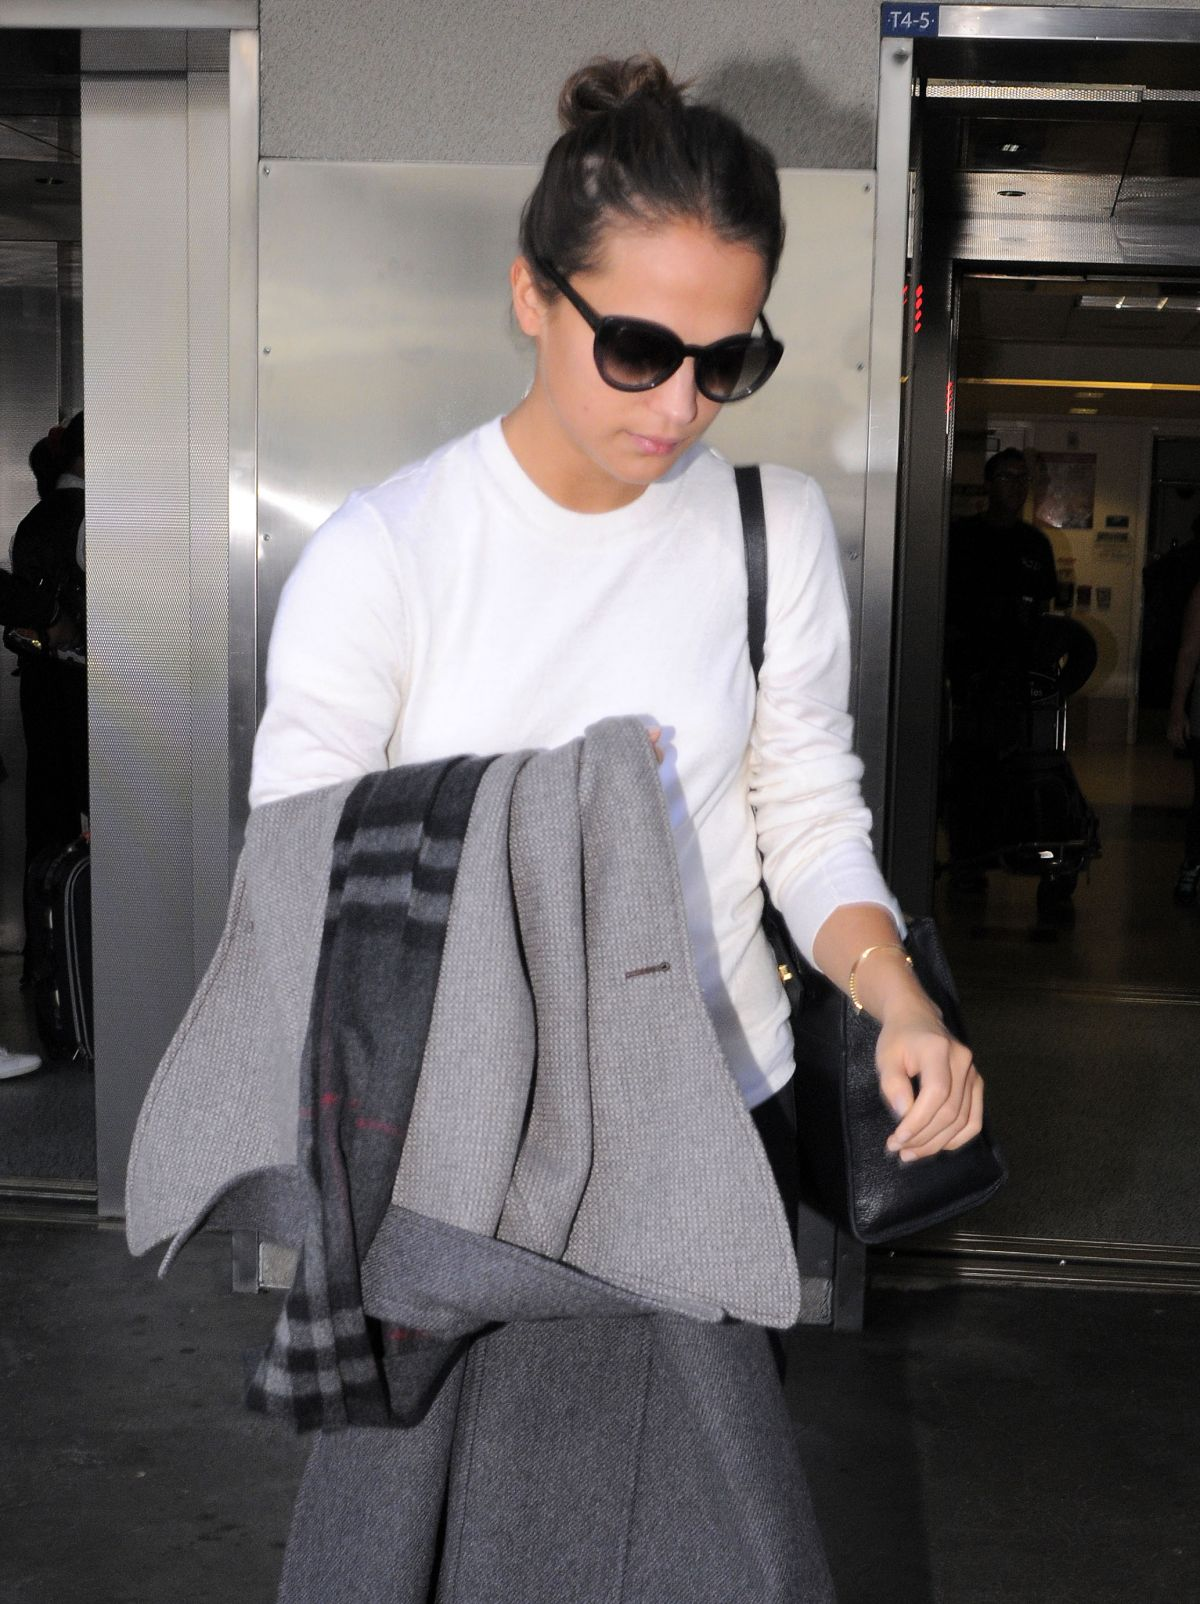 ALICIA VIKANDER at Los Angeles International Airport 11/24/2015